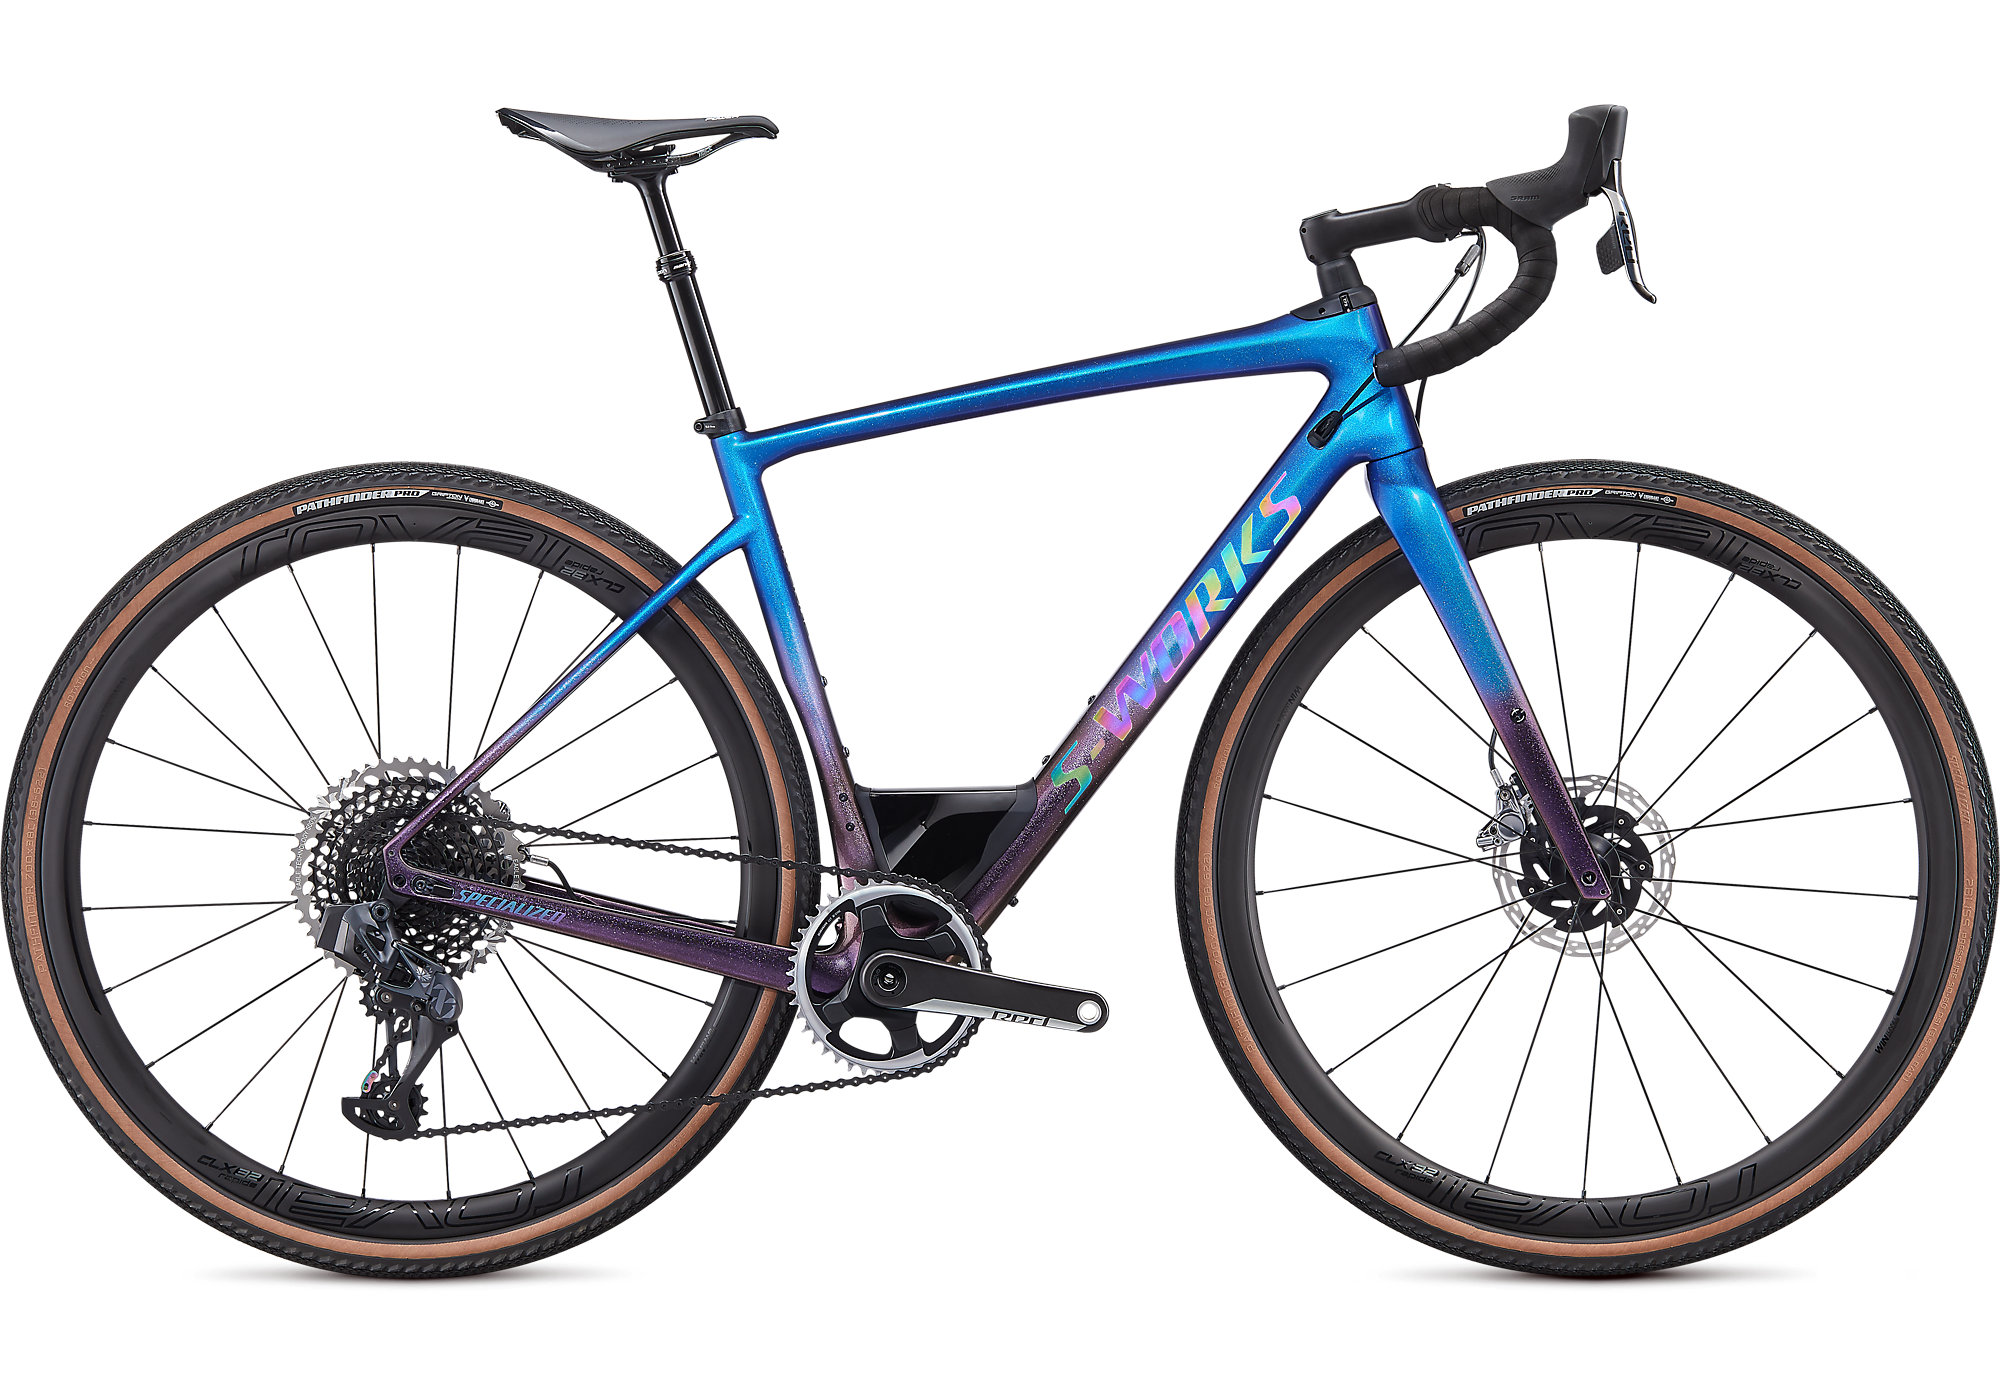 2020 Specialized S-Works Diverge Carbon Gravel Bike in Blue | Cross